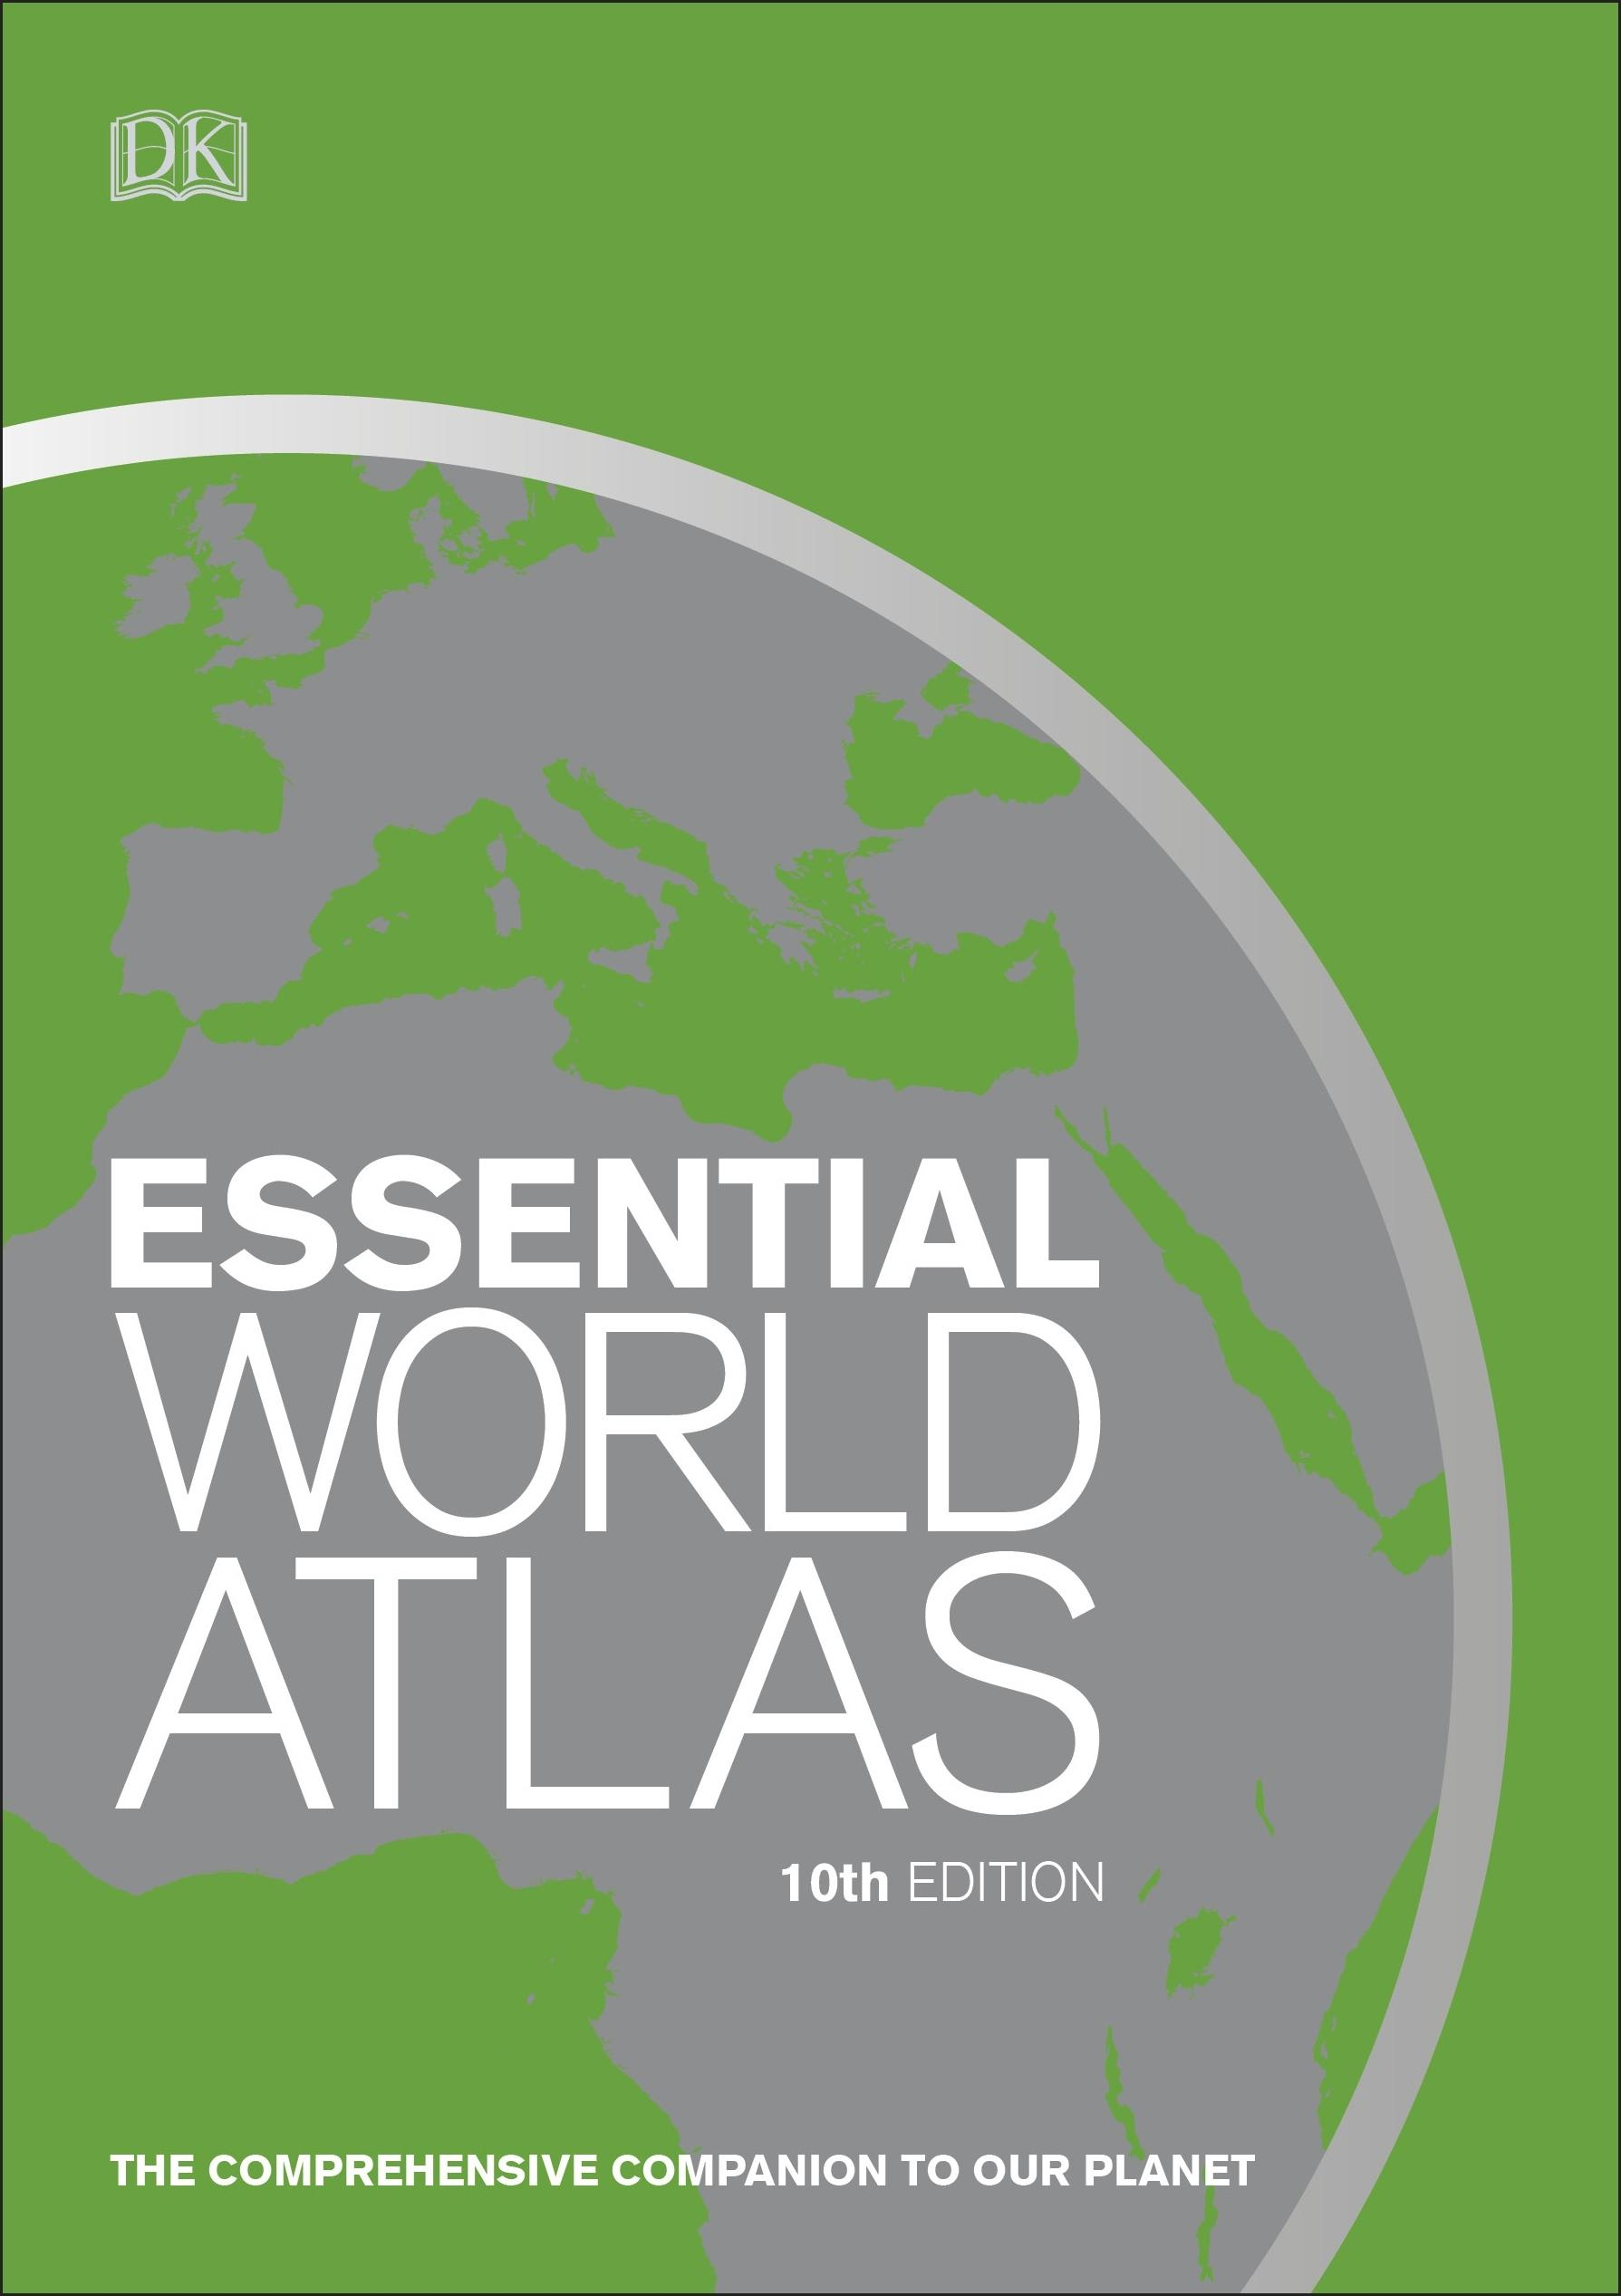 Essential World Atlas: The comprehensive companion to our planet (10th Edition) by  DK